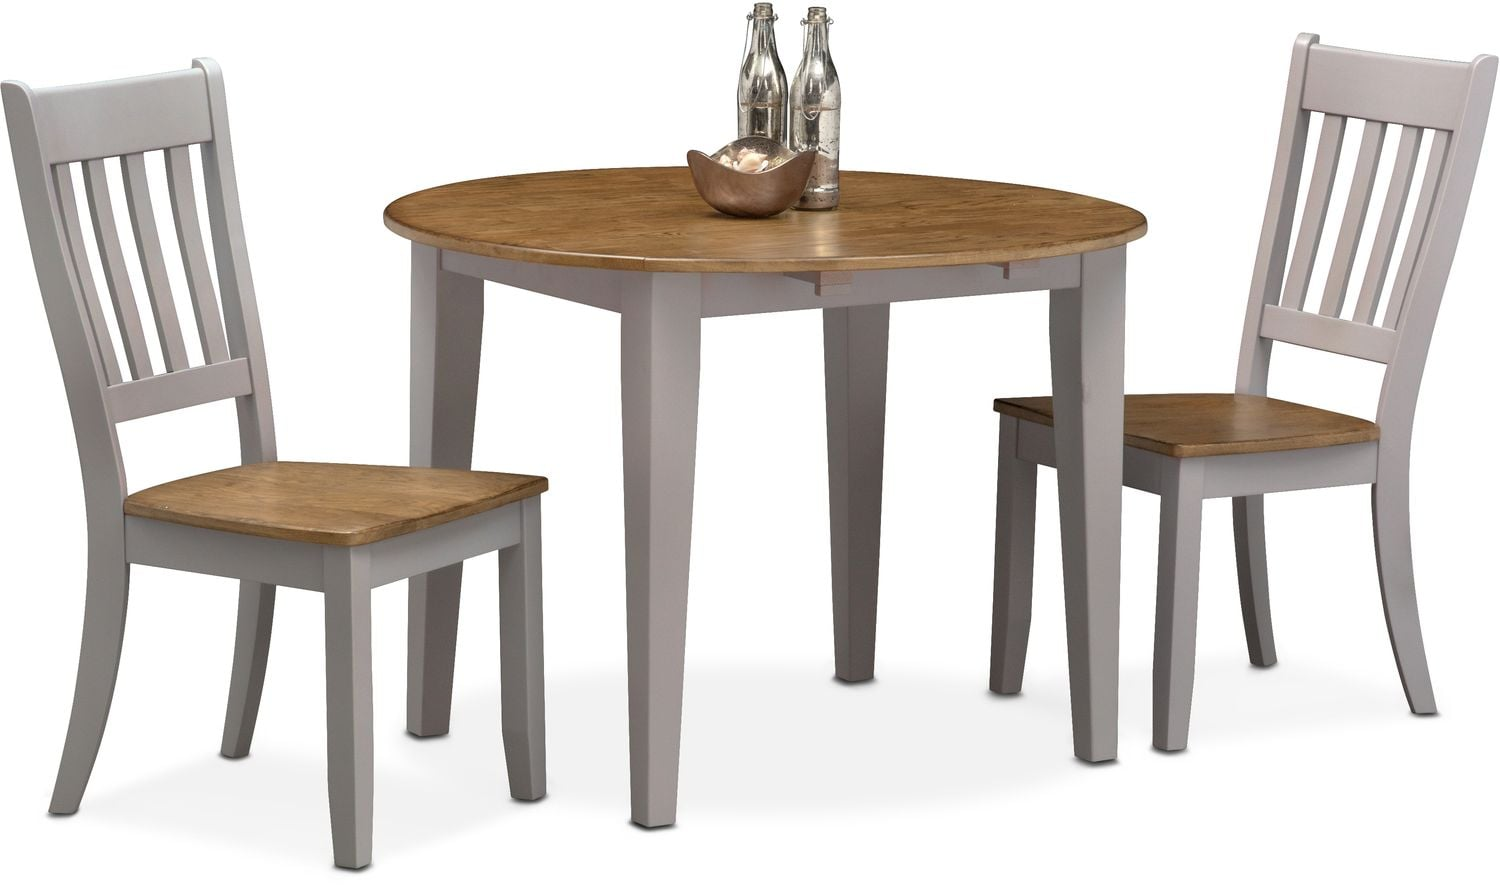 Captivating $299.97 Nantucket Drop Leaf Table And 2 Slat Back Chairs   Oak And Gray